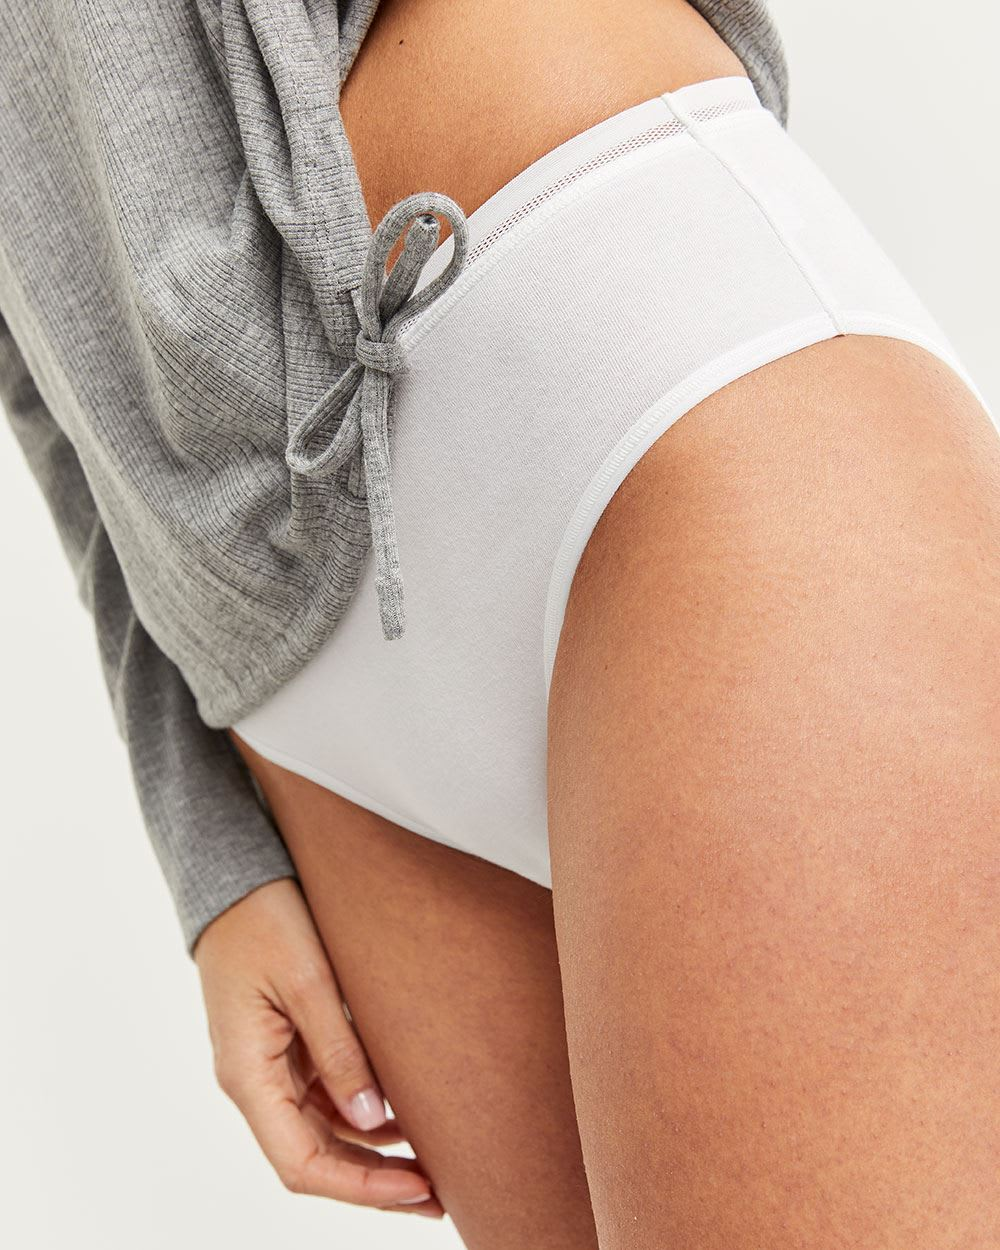 Cotton High Waist Panty with Mesh & Lace